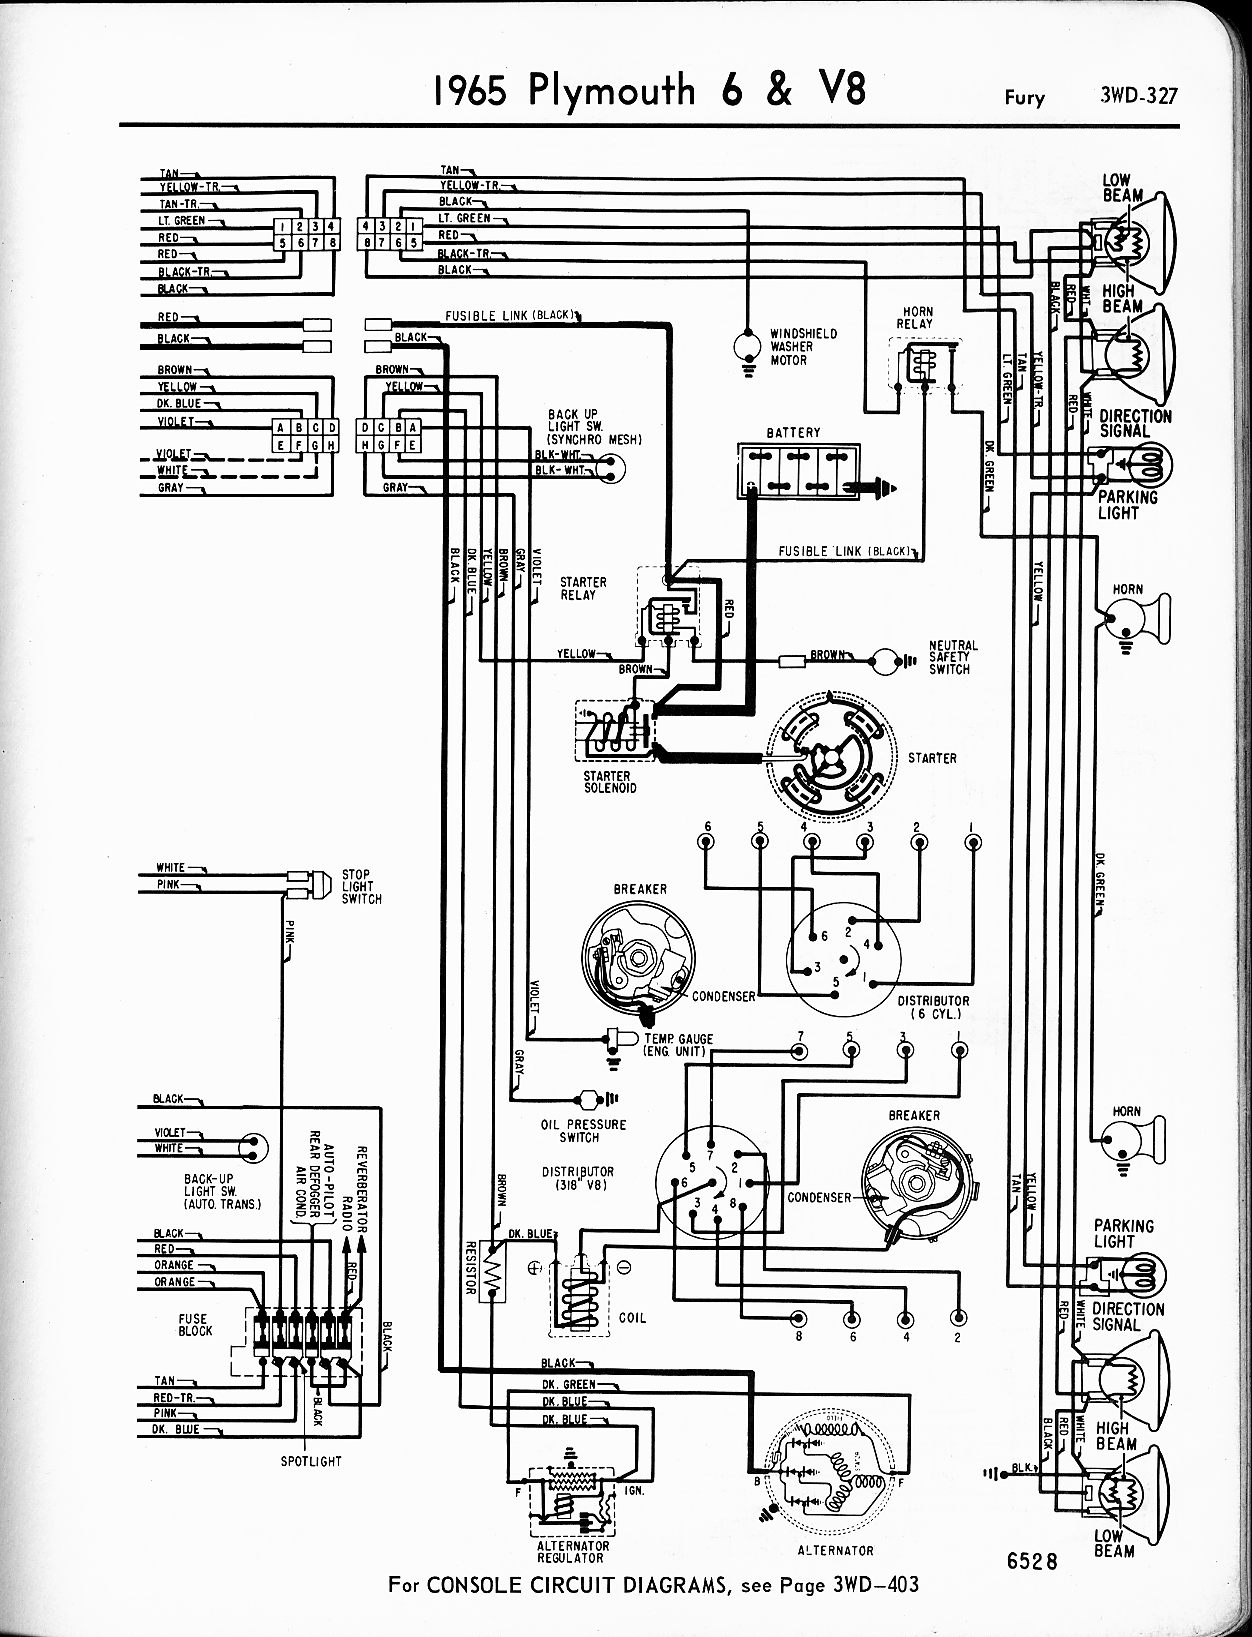 MWire5765 327 plymouth wiring schematics plymouth wiring diagrams instruction 1954 plymouth belvedere wiring diagram at eliteediting.co